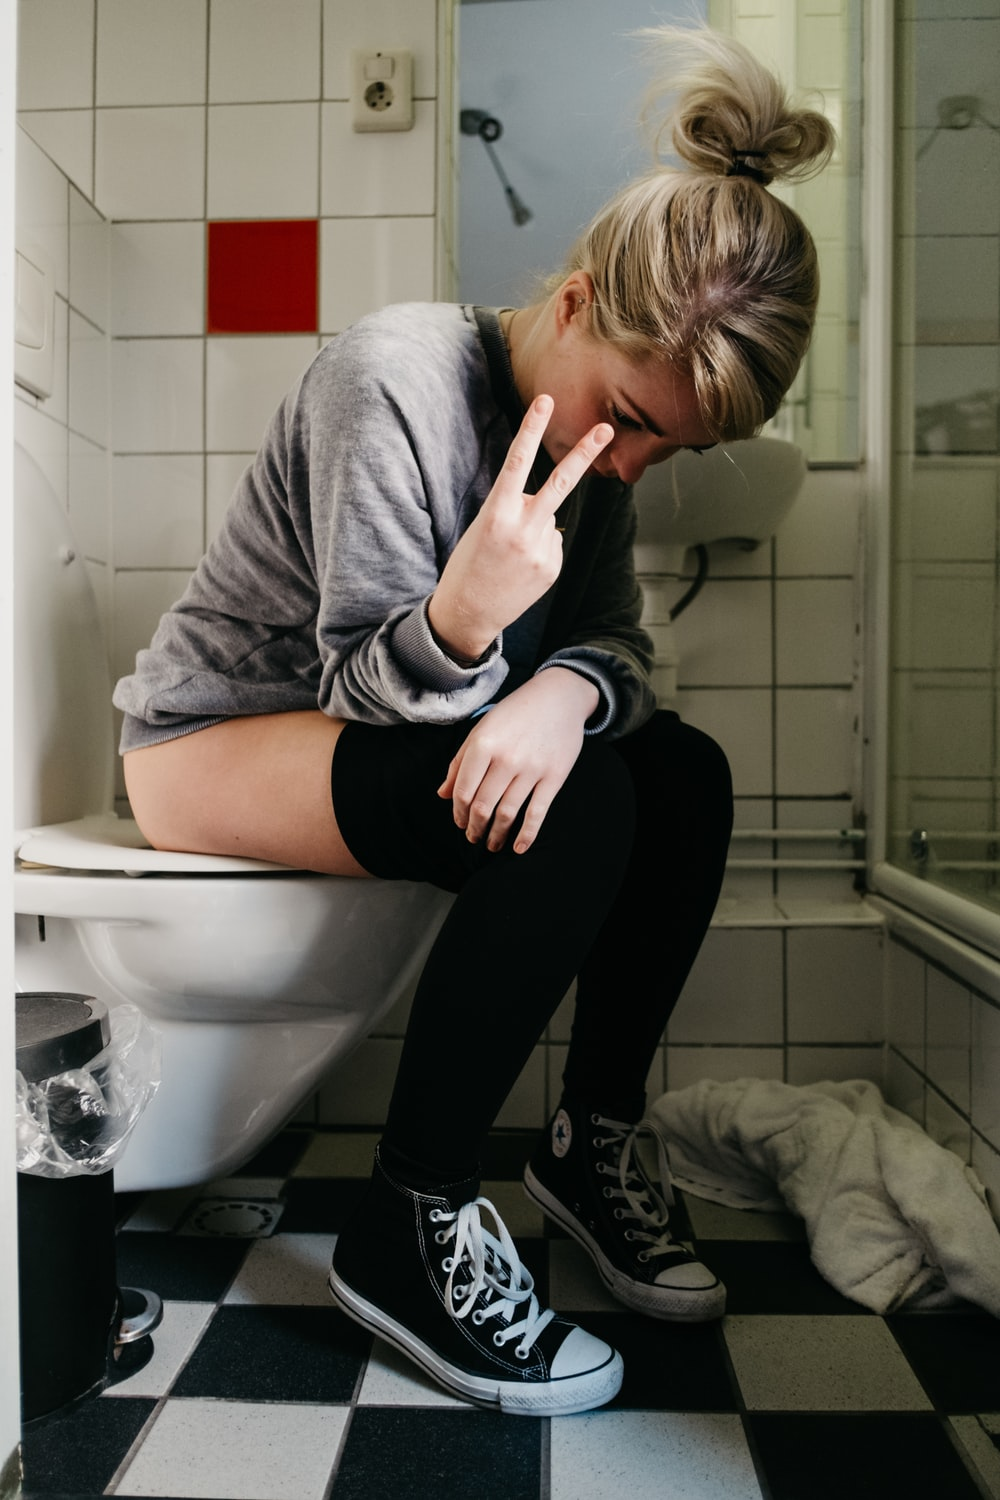 woman sitting on toilet bowl showing peace hand sign